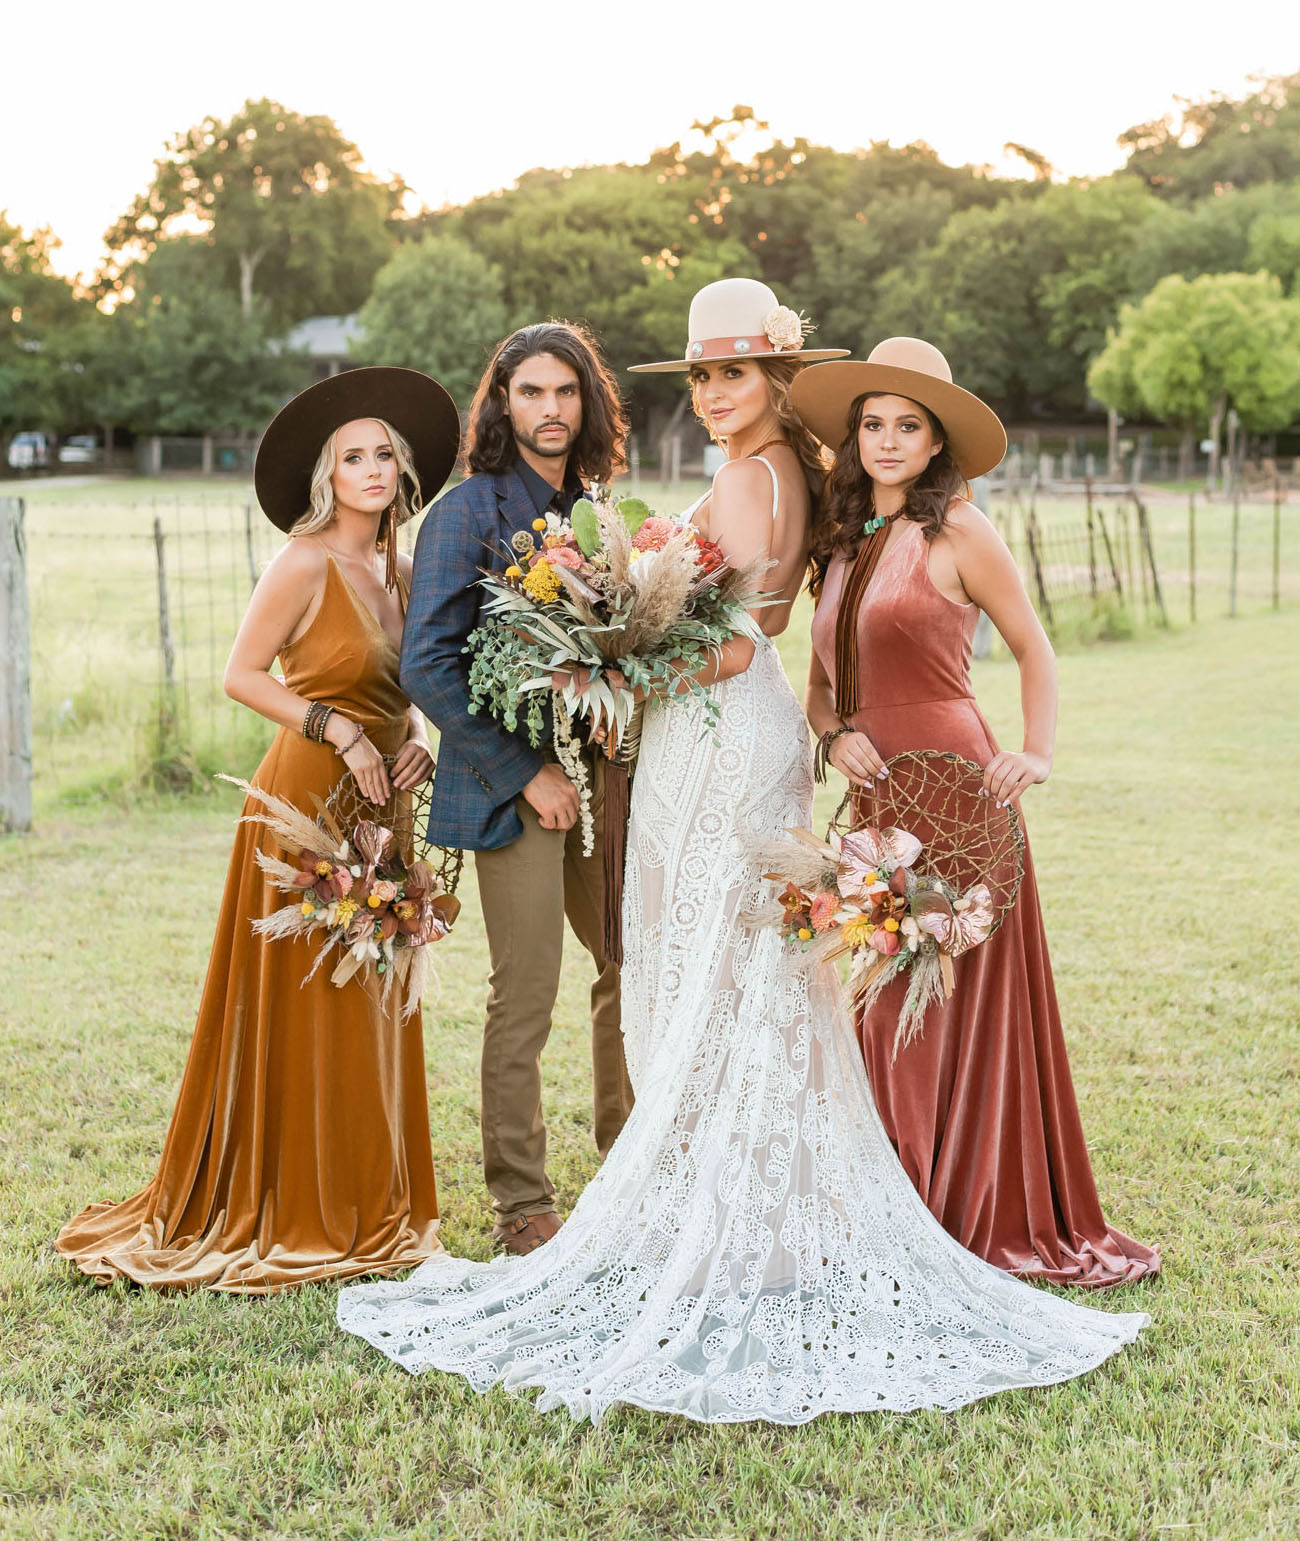 Texas Desert Wedding Inspiration with Western Boho Style